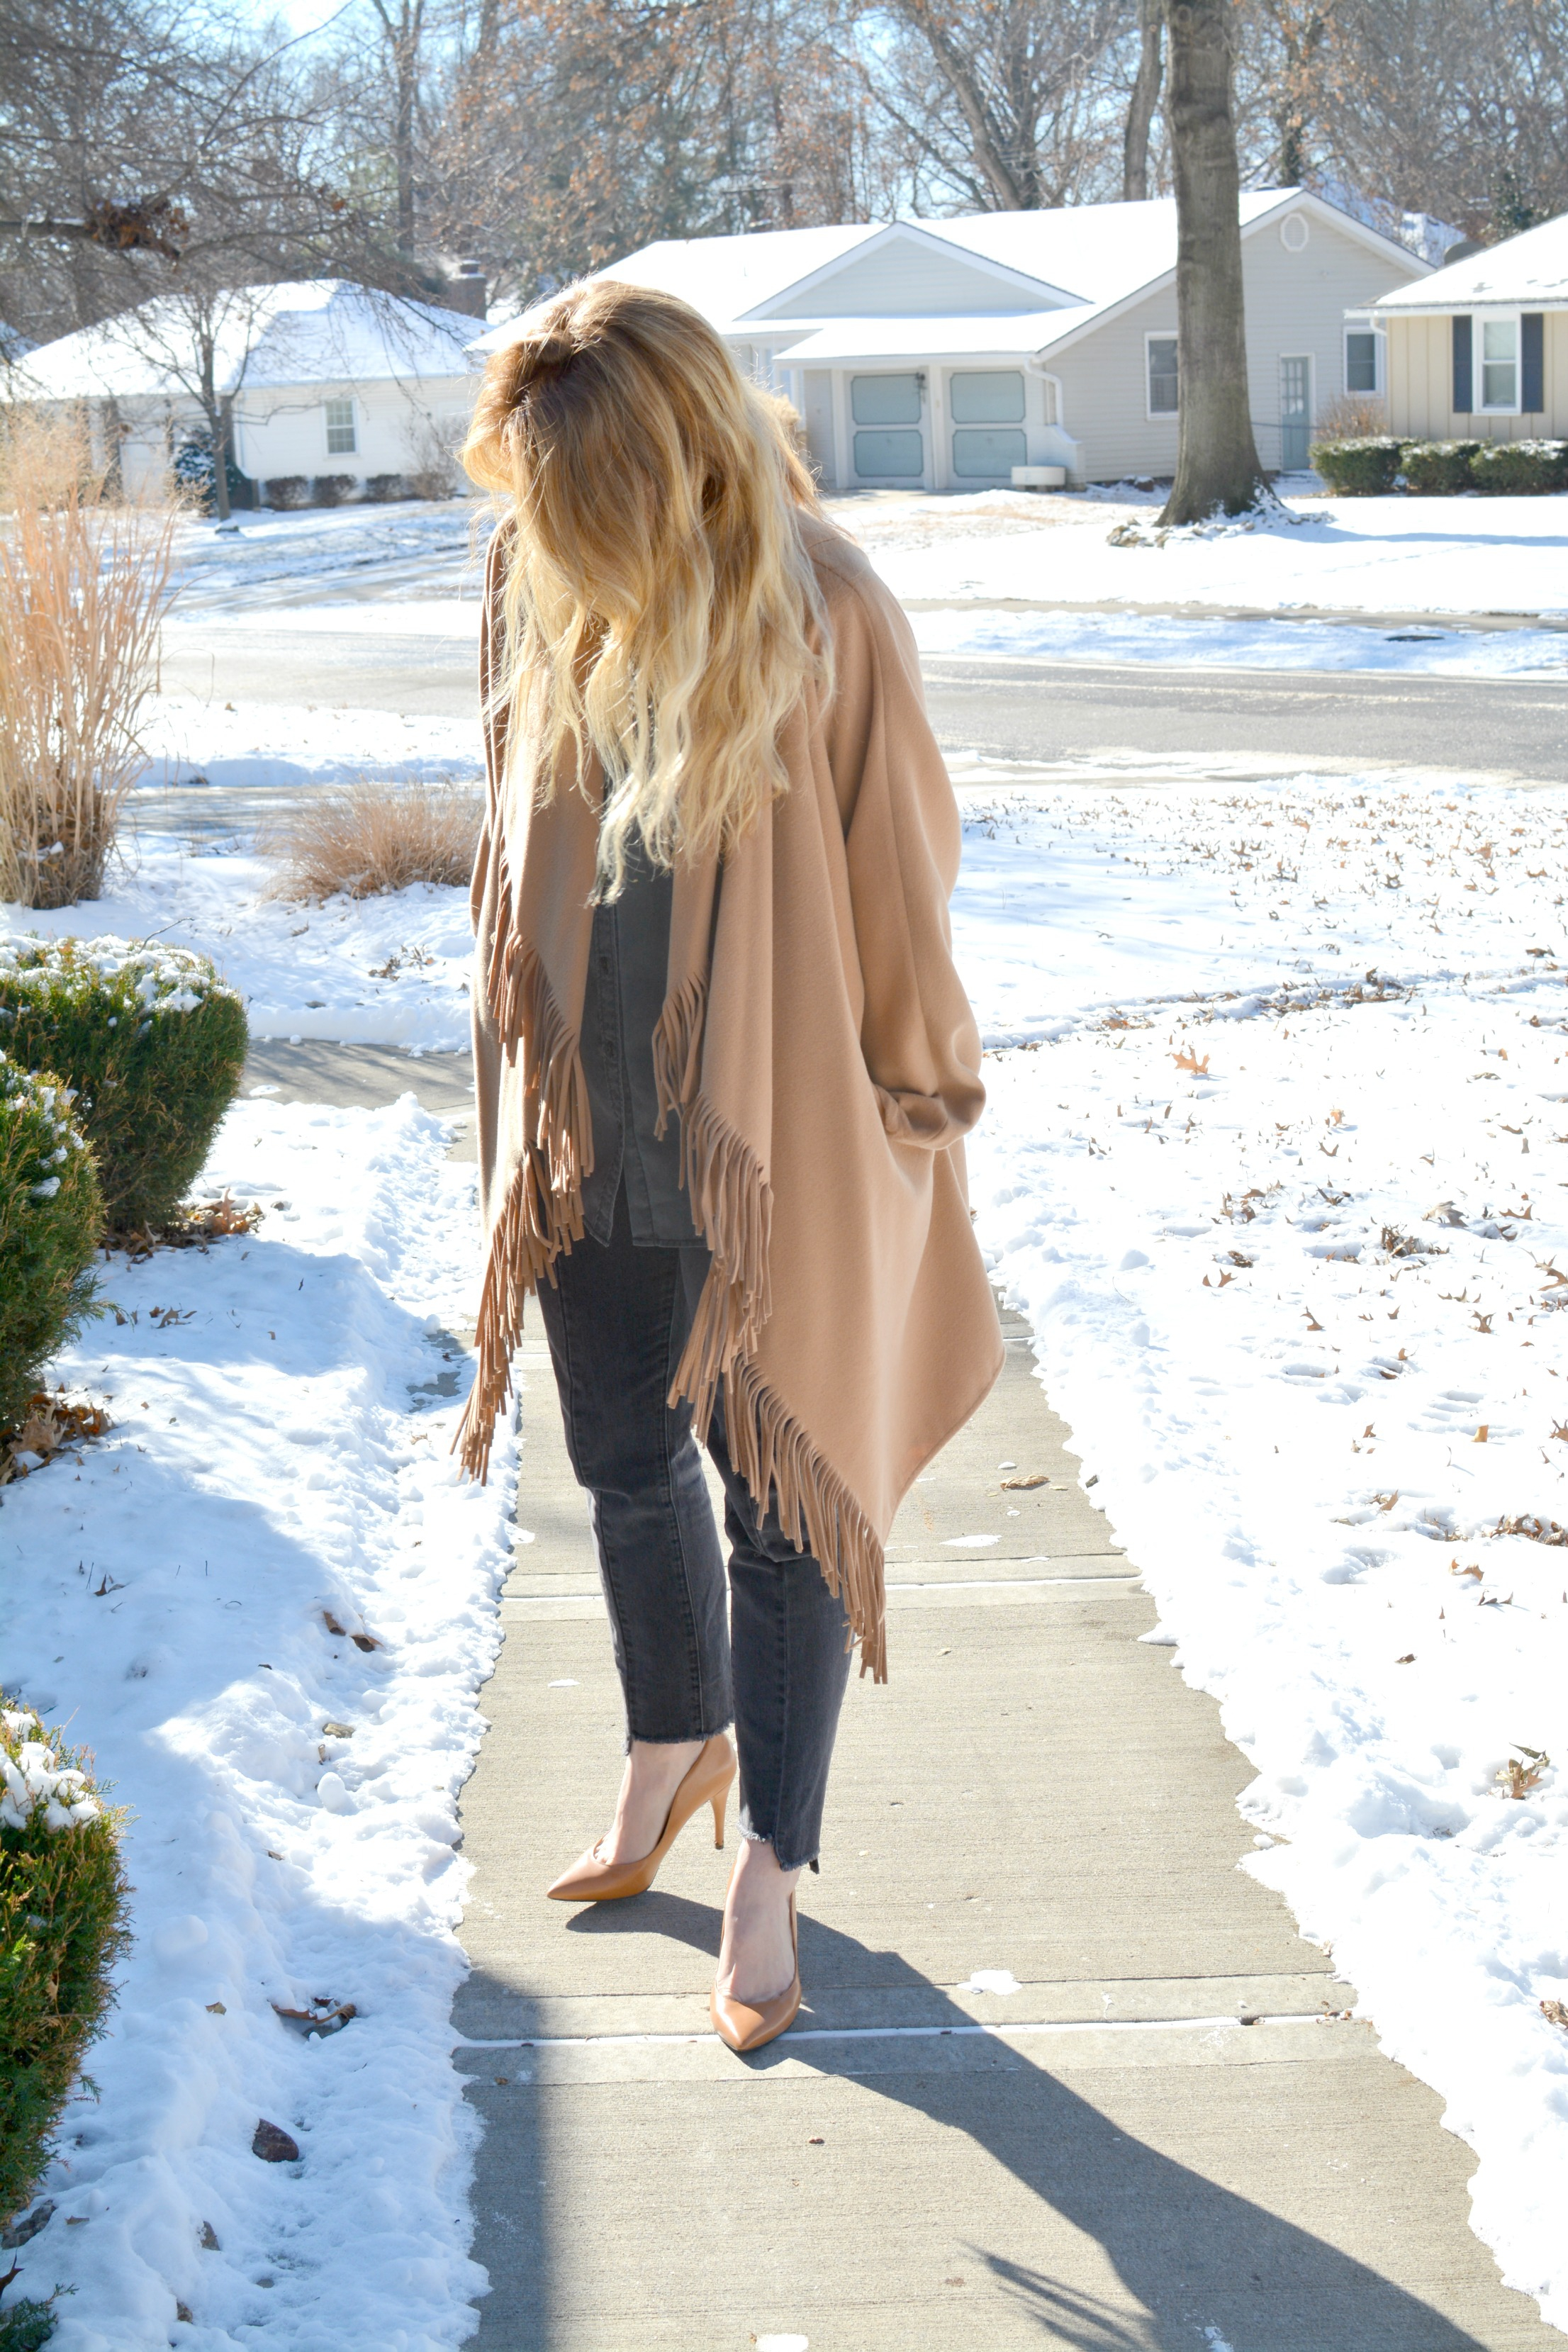 Ashley from LSR in a fringe camel coat, camel pumps, and dark stepped-hem denim